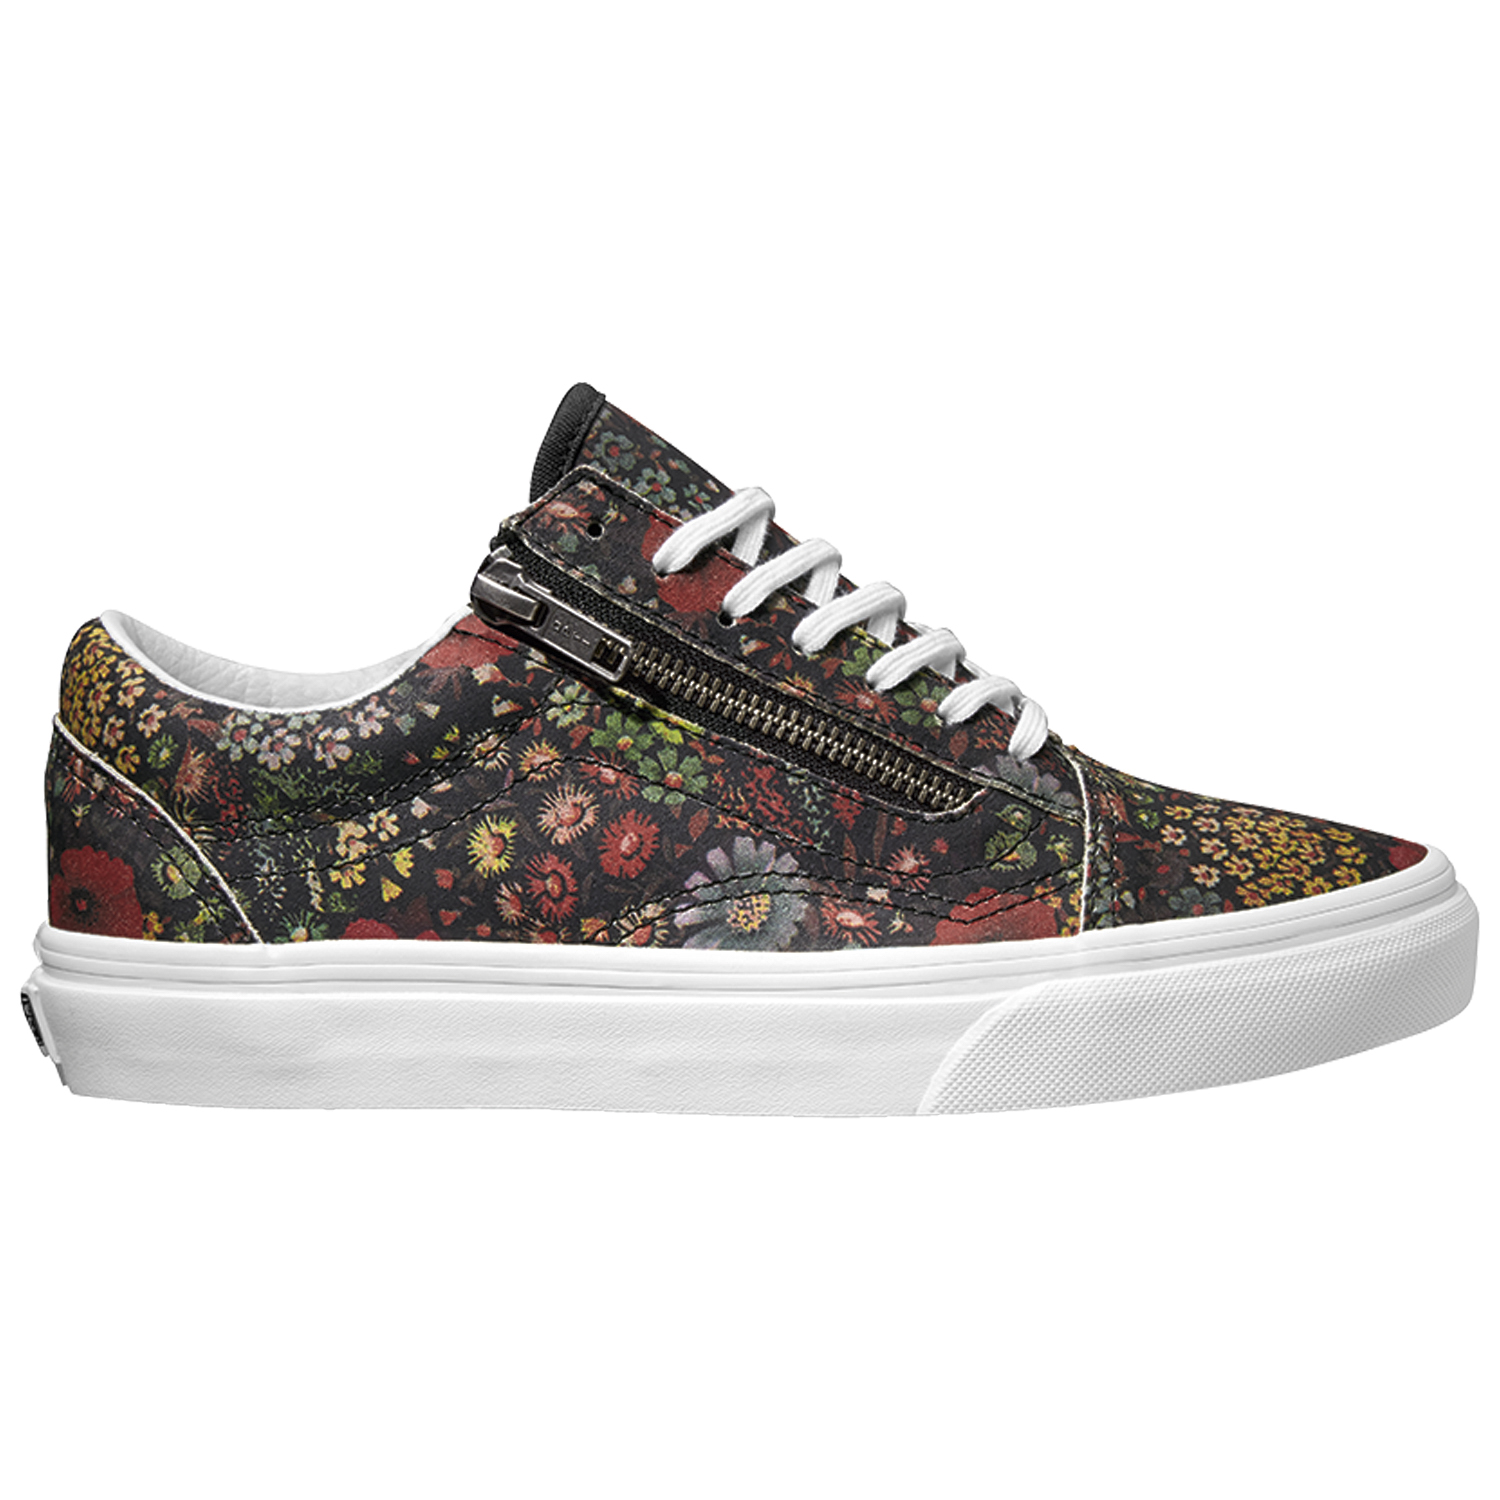 vans-old-skool-floral-leather-multi-true-white-179-90